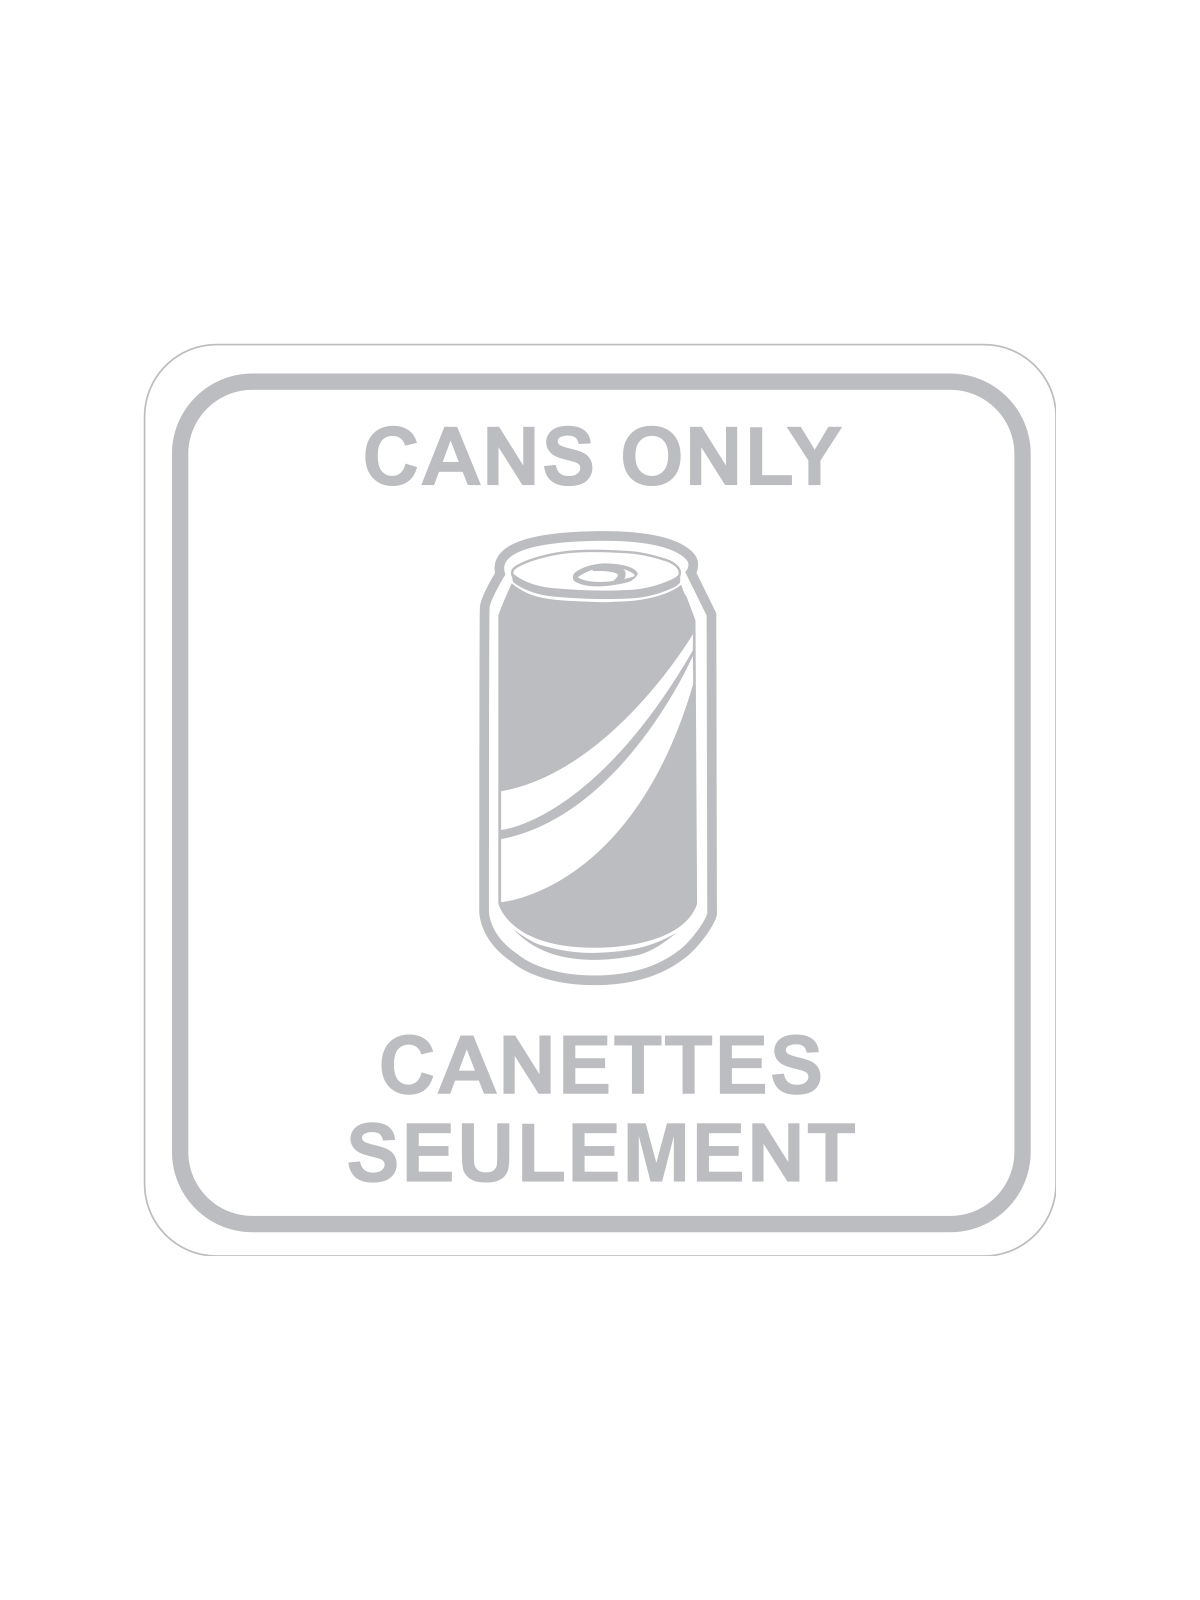 SQUARE LABEL CANS ONLY - ENG/FRE title=